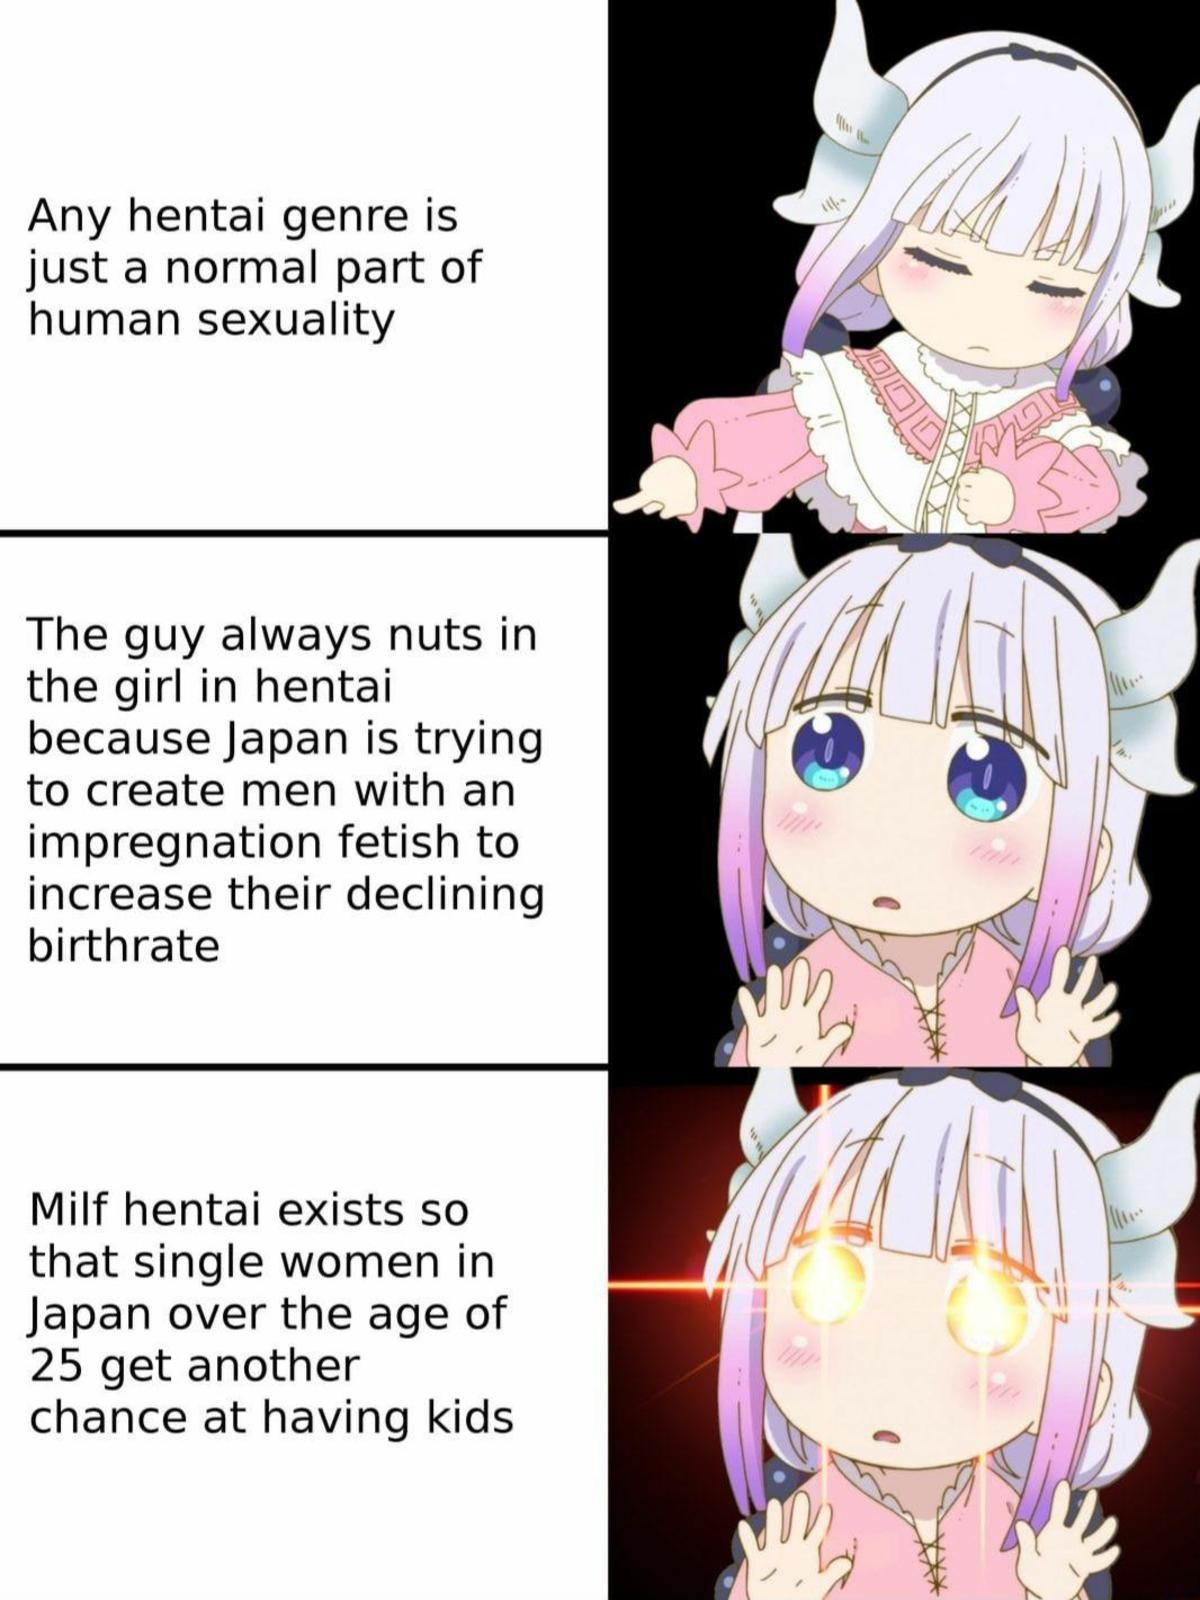 brown dynamic thoughtless Narwhal. .. >Impregnating your cute sexy asian milf office worker waifu gf forever >Multiple times over the many years of your happy marriage, all to help restore Jap